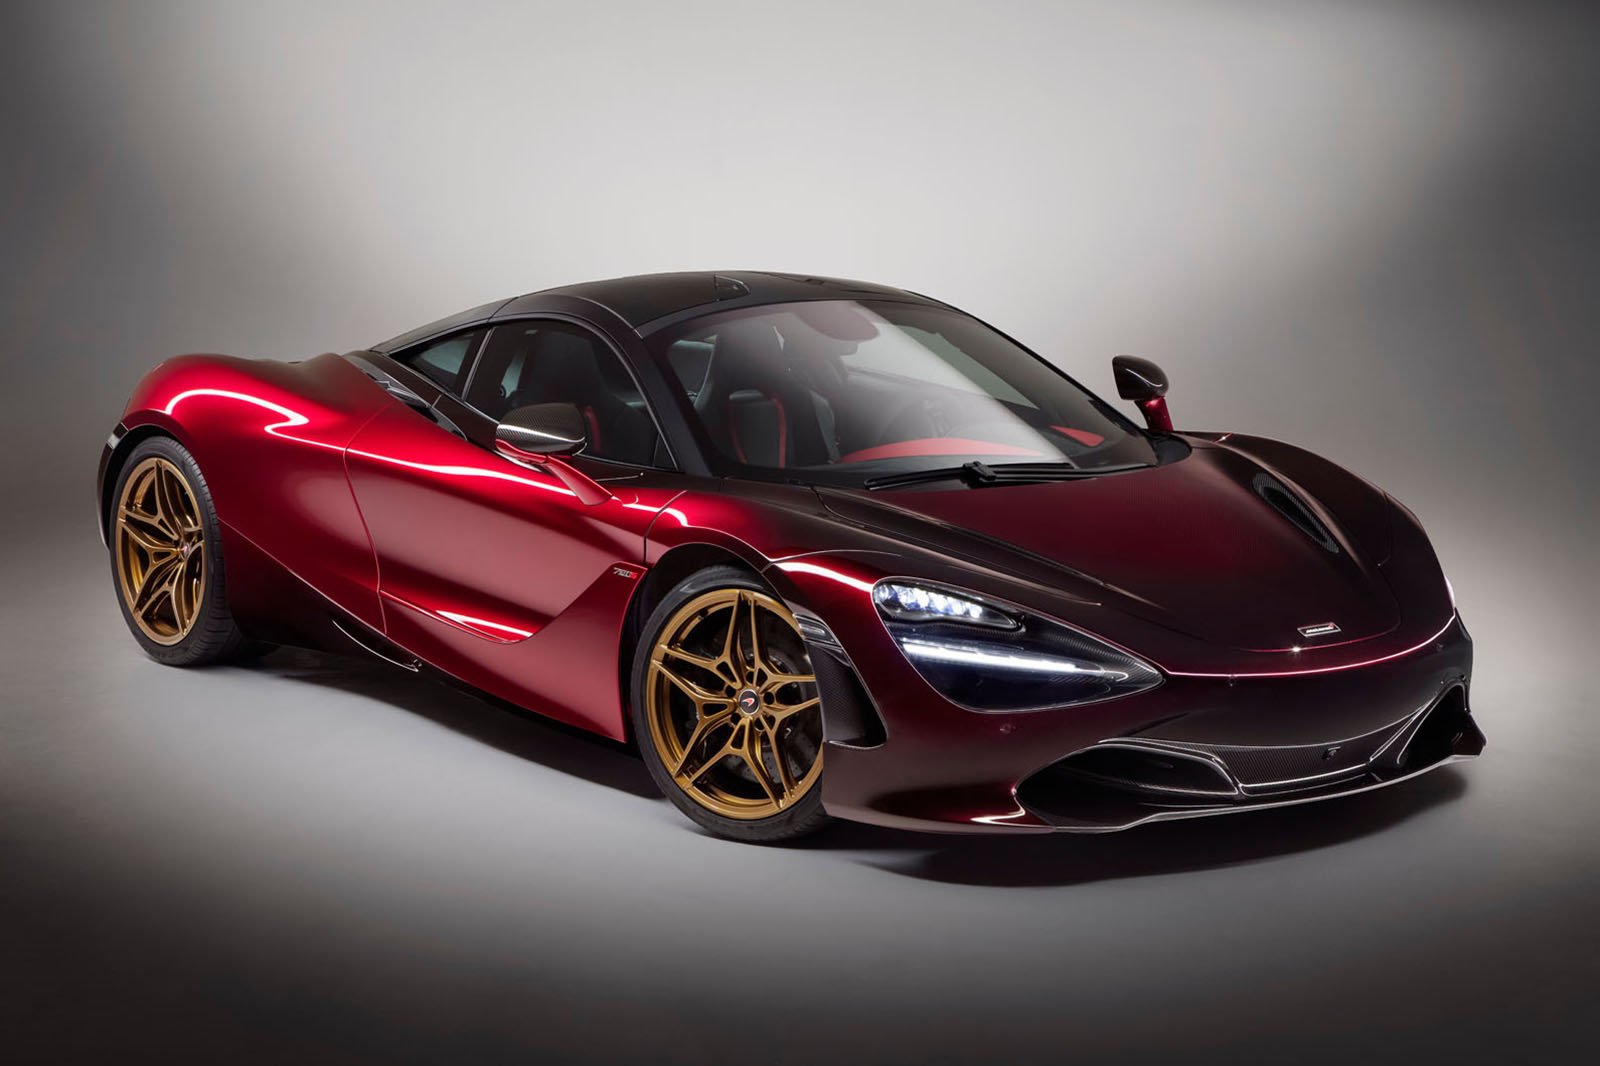 2019 mclaren f1 to feature new hybrid tech | autocar